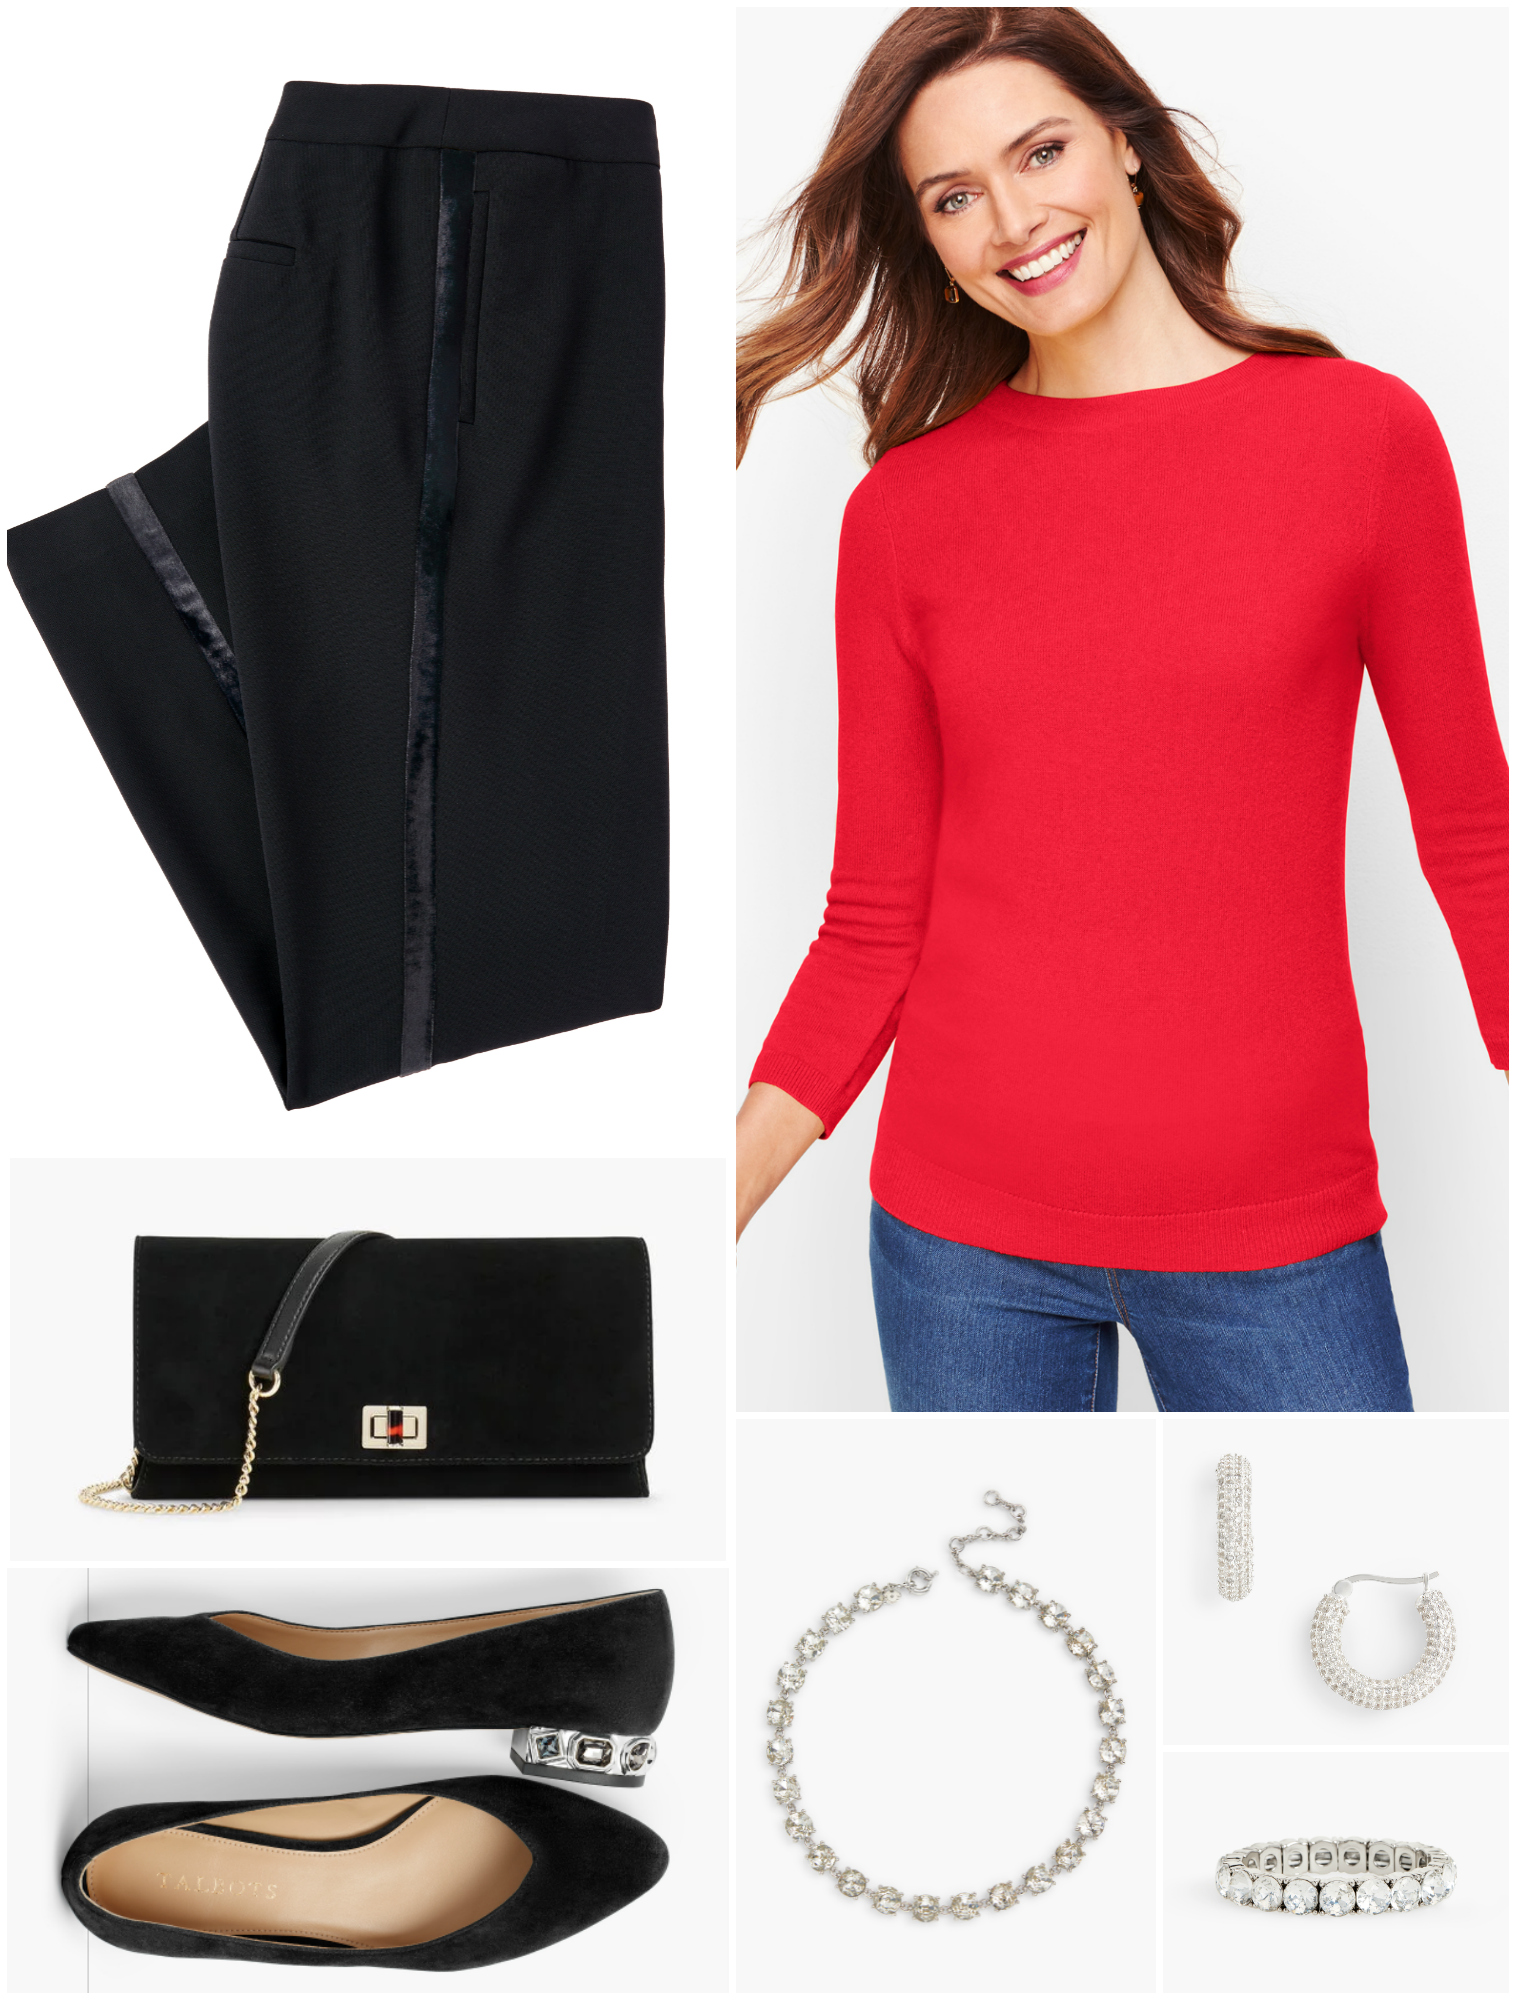 By pairing the tuxedo trousers with a cheery red cashmere crewneck, the look is reduced in formality but not in elegance.